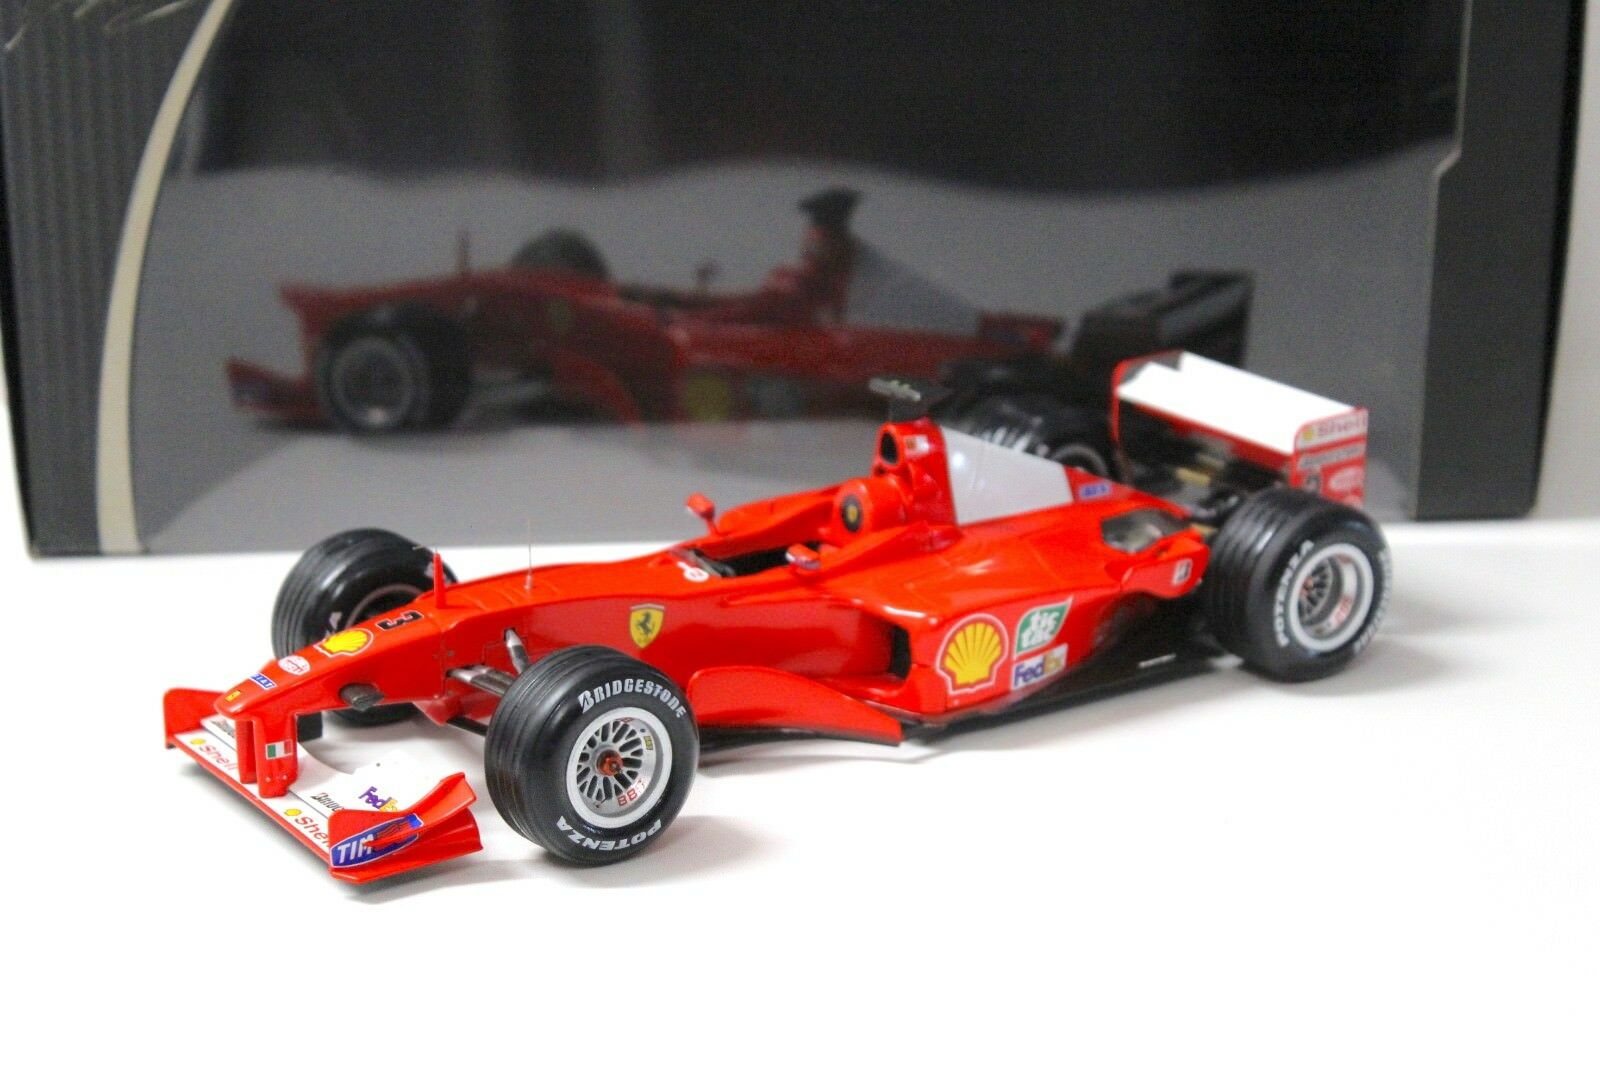 1 18 Hot Wheels Elite Ferrari F1-2000 Schumacher Japan GP bei PREMIUM-MODELCARS